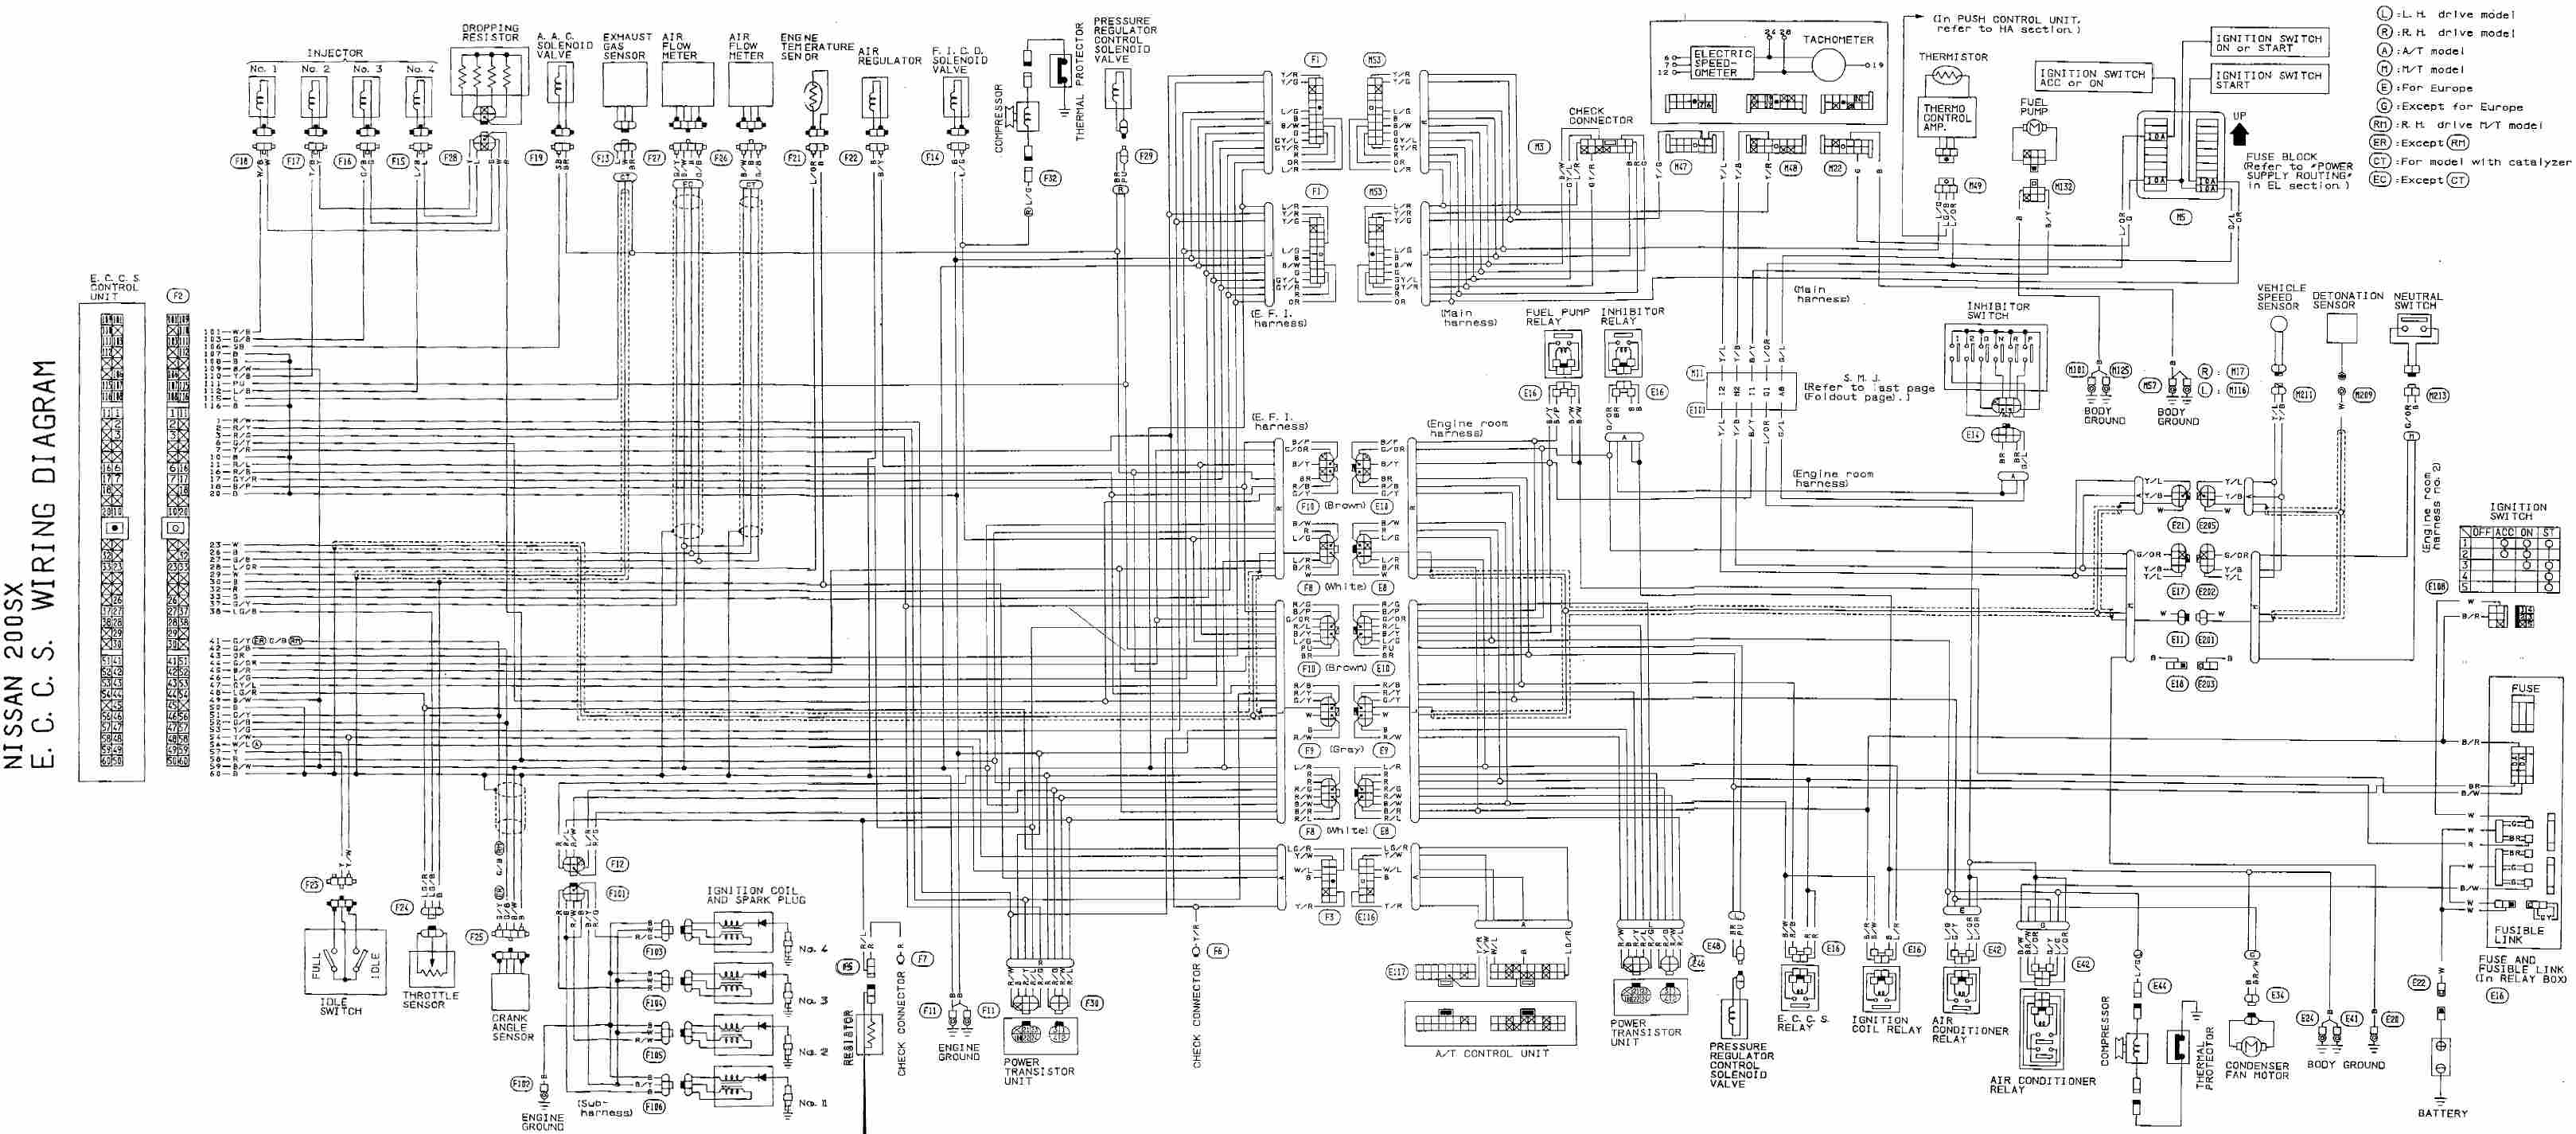 mazda b2200 radio wiring diagram 05 lincoln navigator engine diagram, Wiring diagram